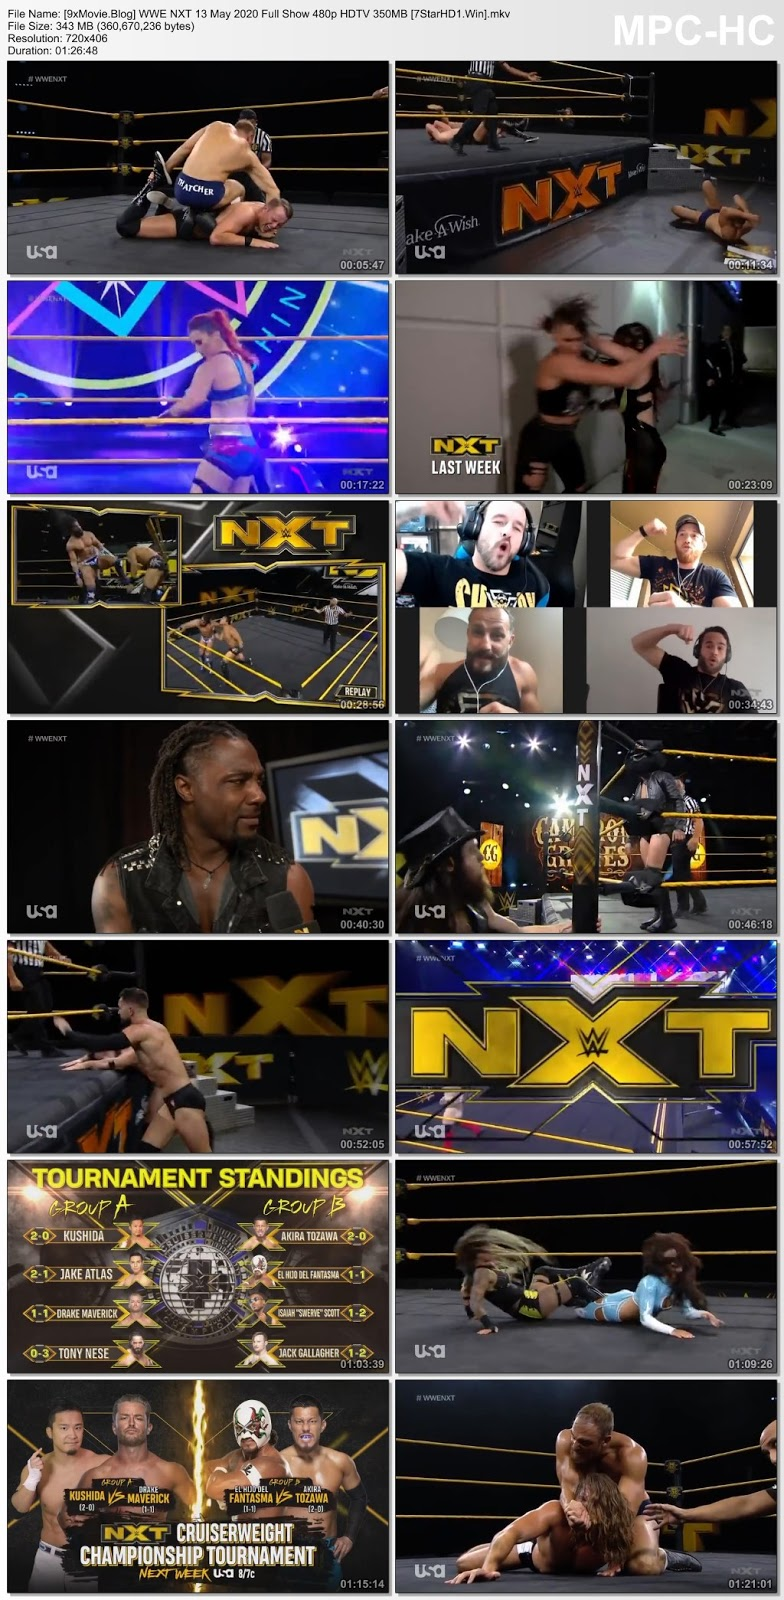 WWE NXT 13 May 2020 Full Show 480p HDTV x264 350MB